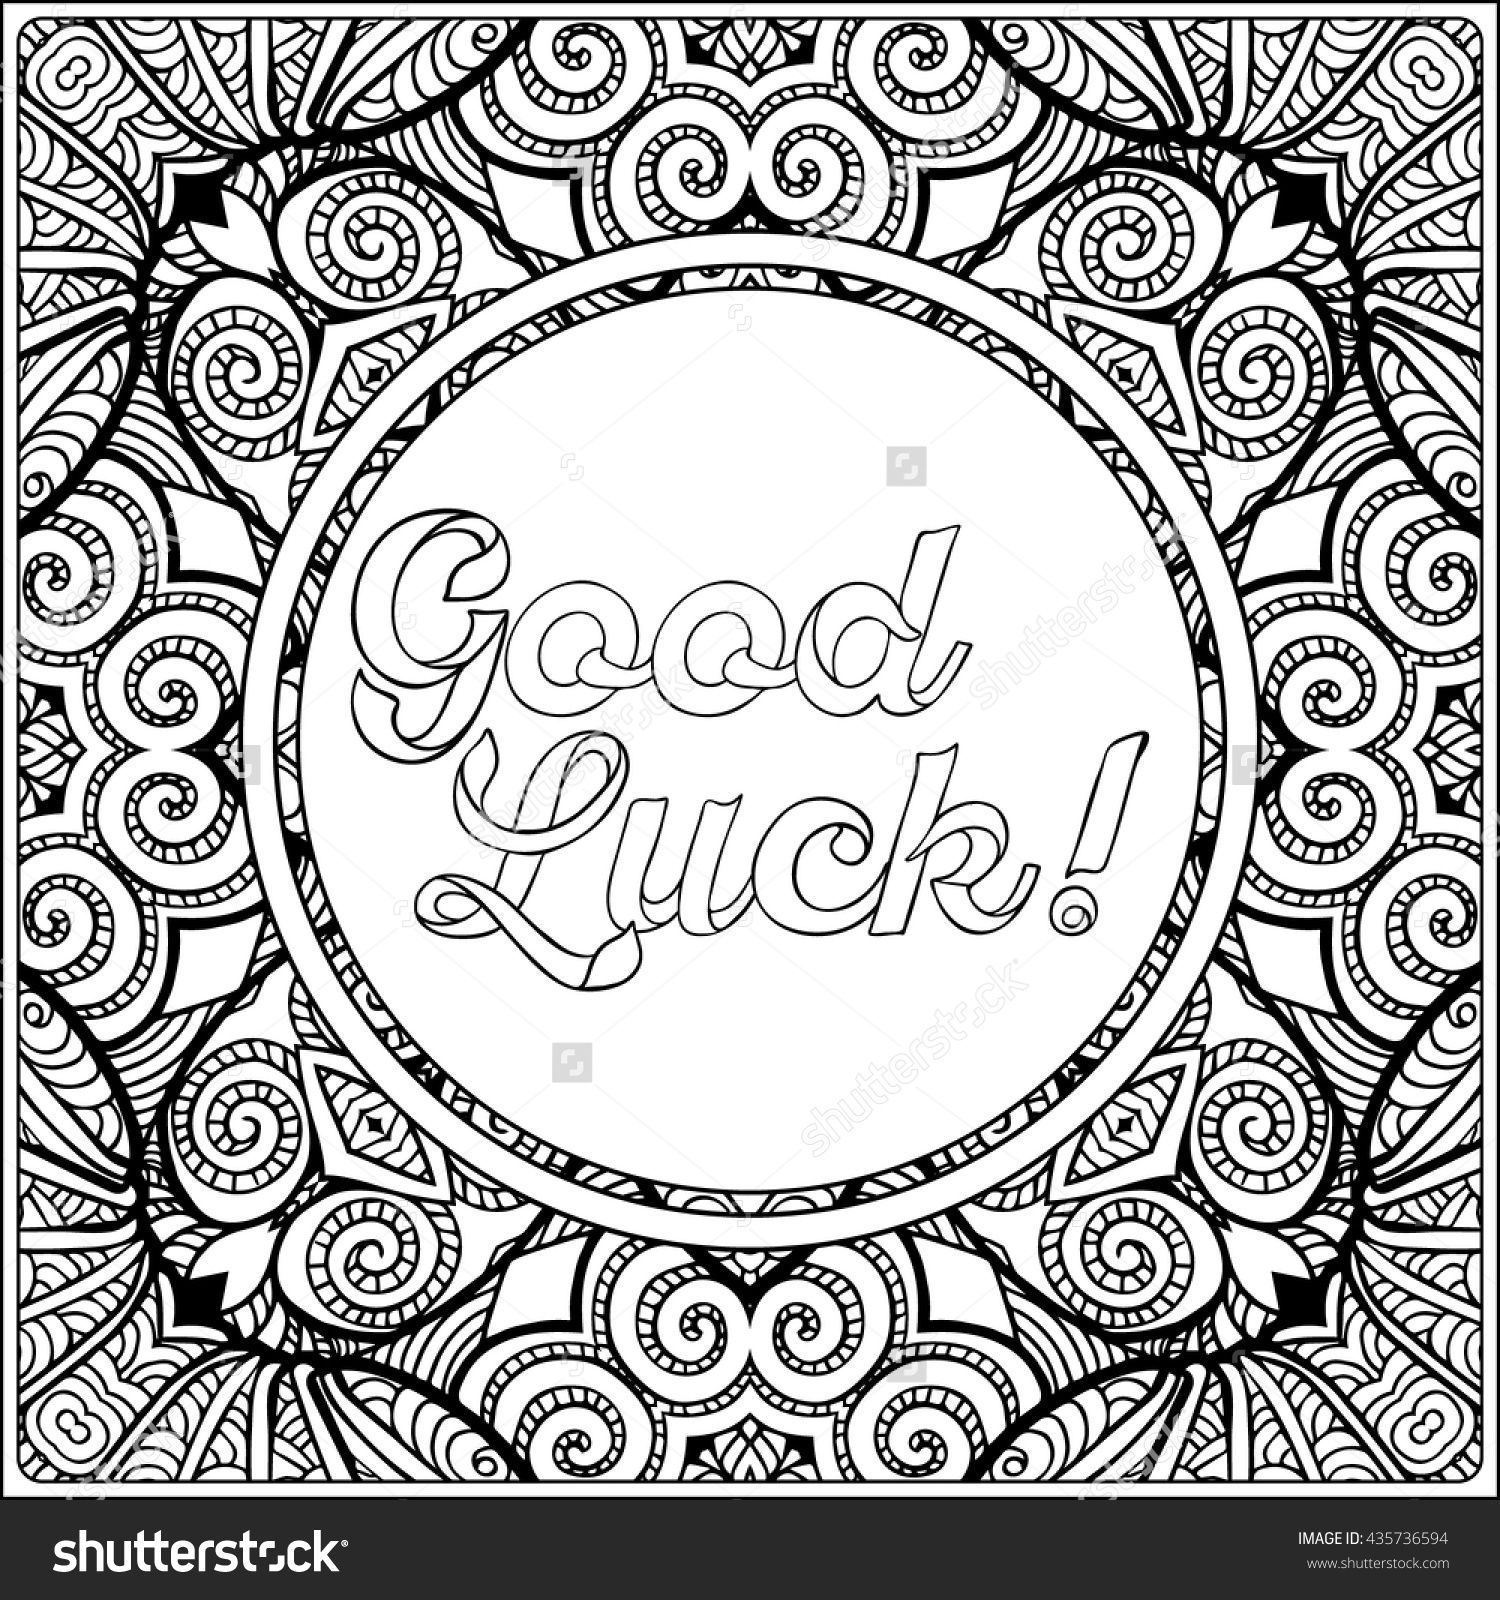 good luck coloring pages Good Luck Lettering. Coloring Page With Message On Vintage Pattern  good luck coloring pages